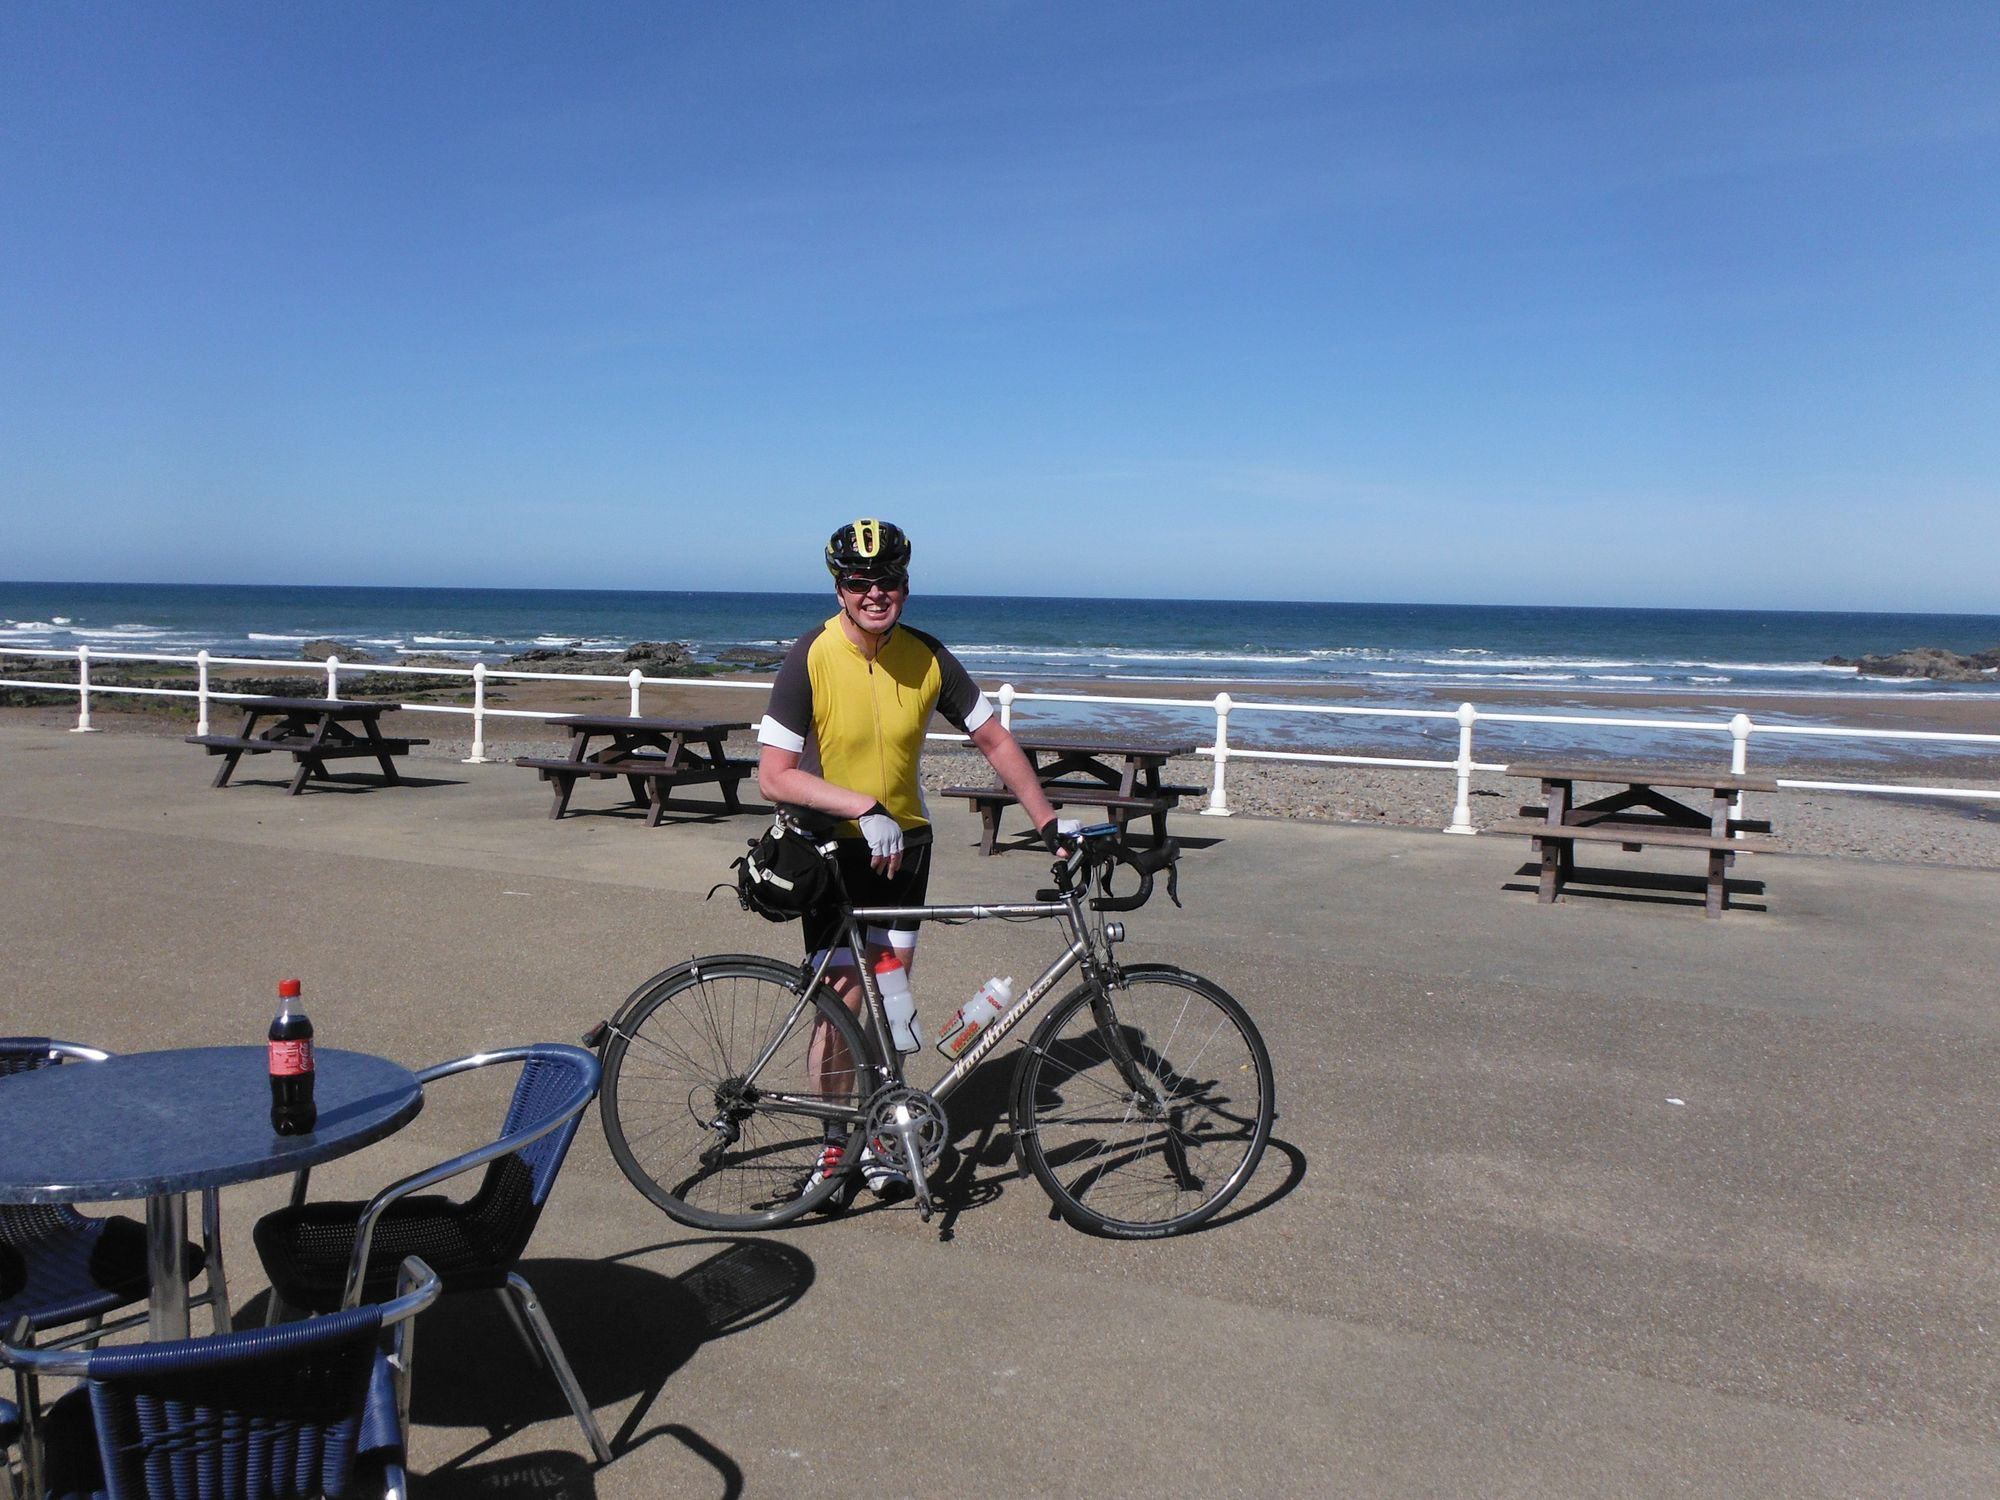 At the café in Bude